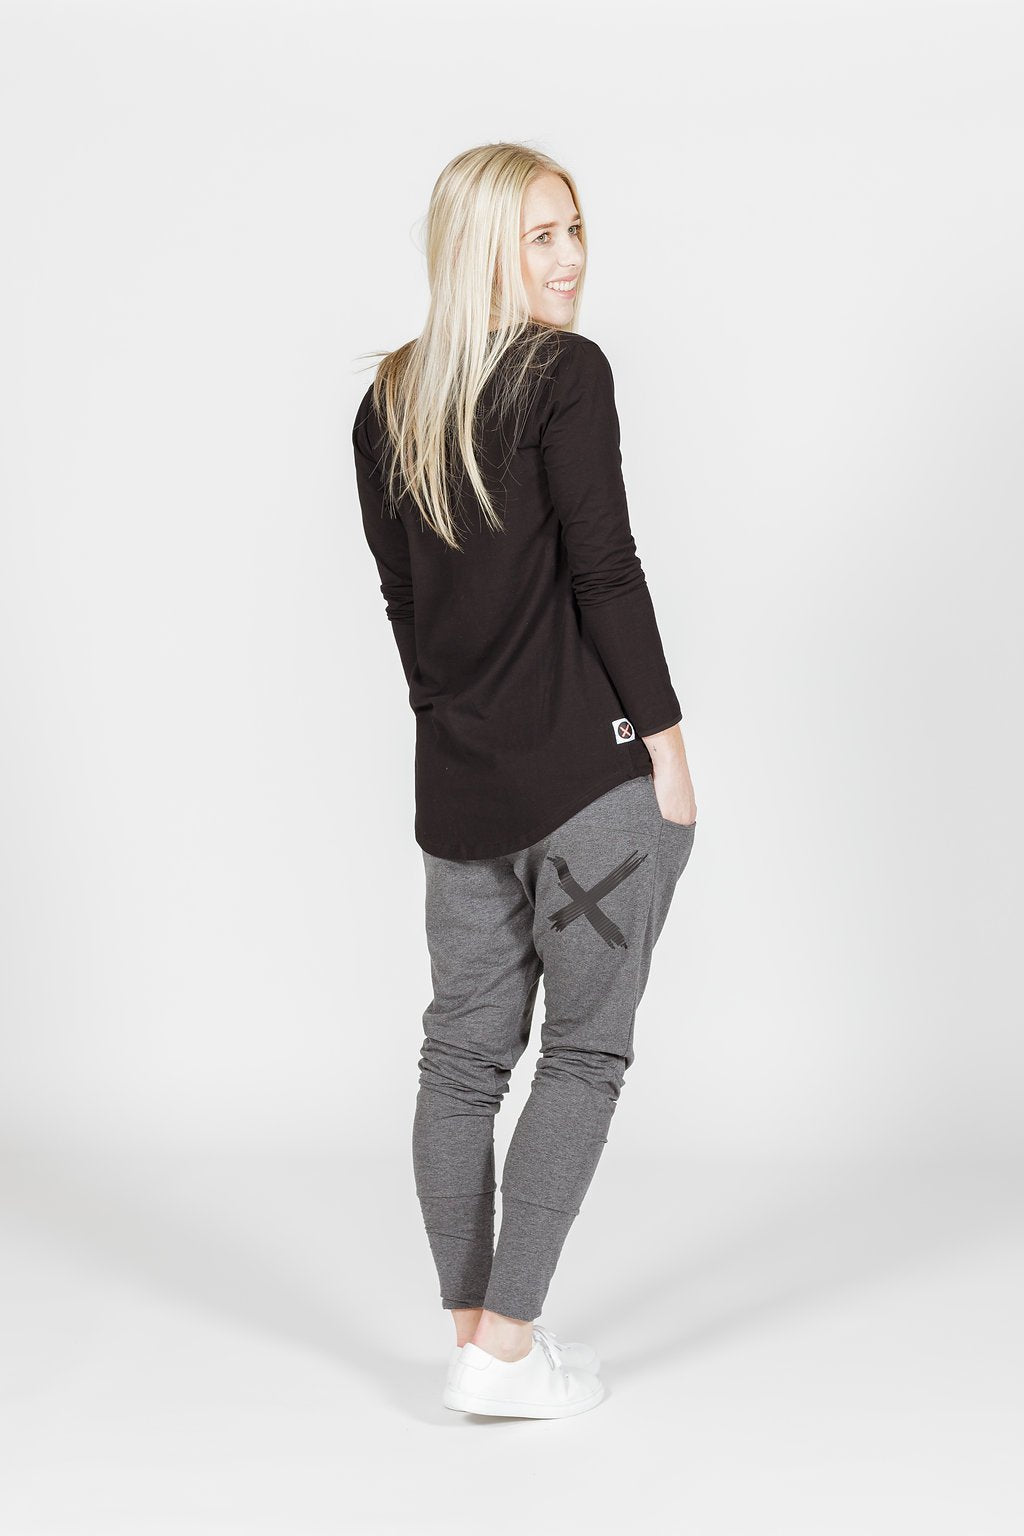 *SALE* APARTMENT PANTS - Charcoal with Black X print